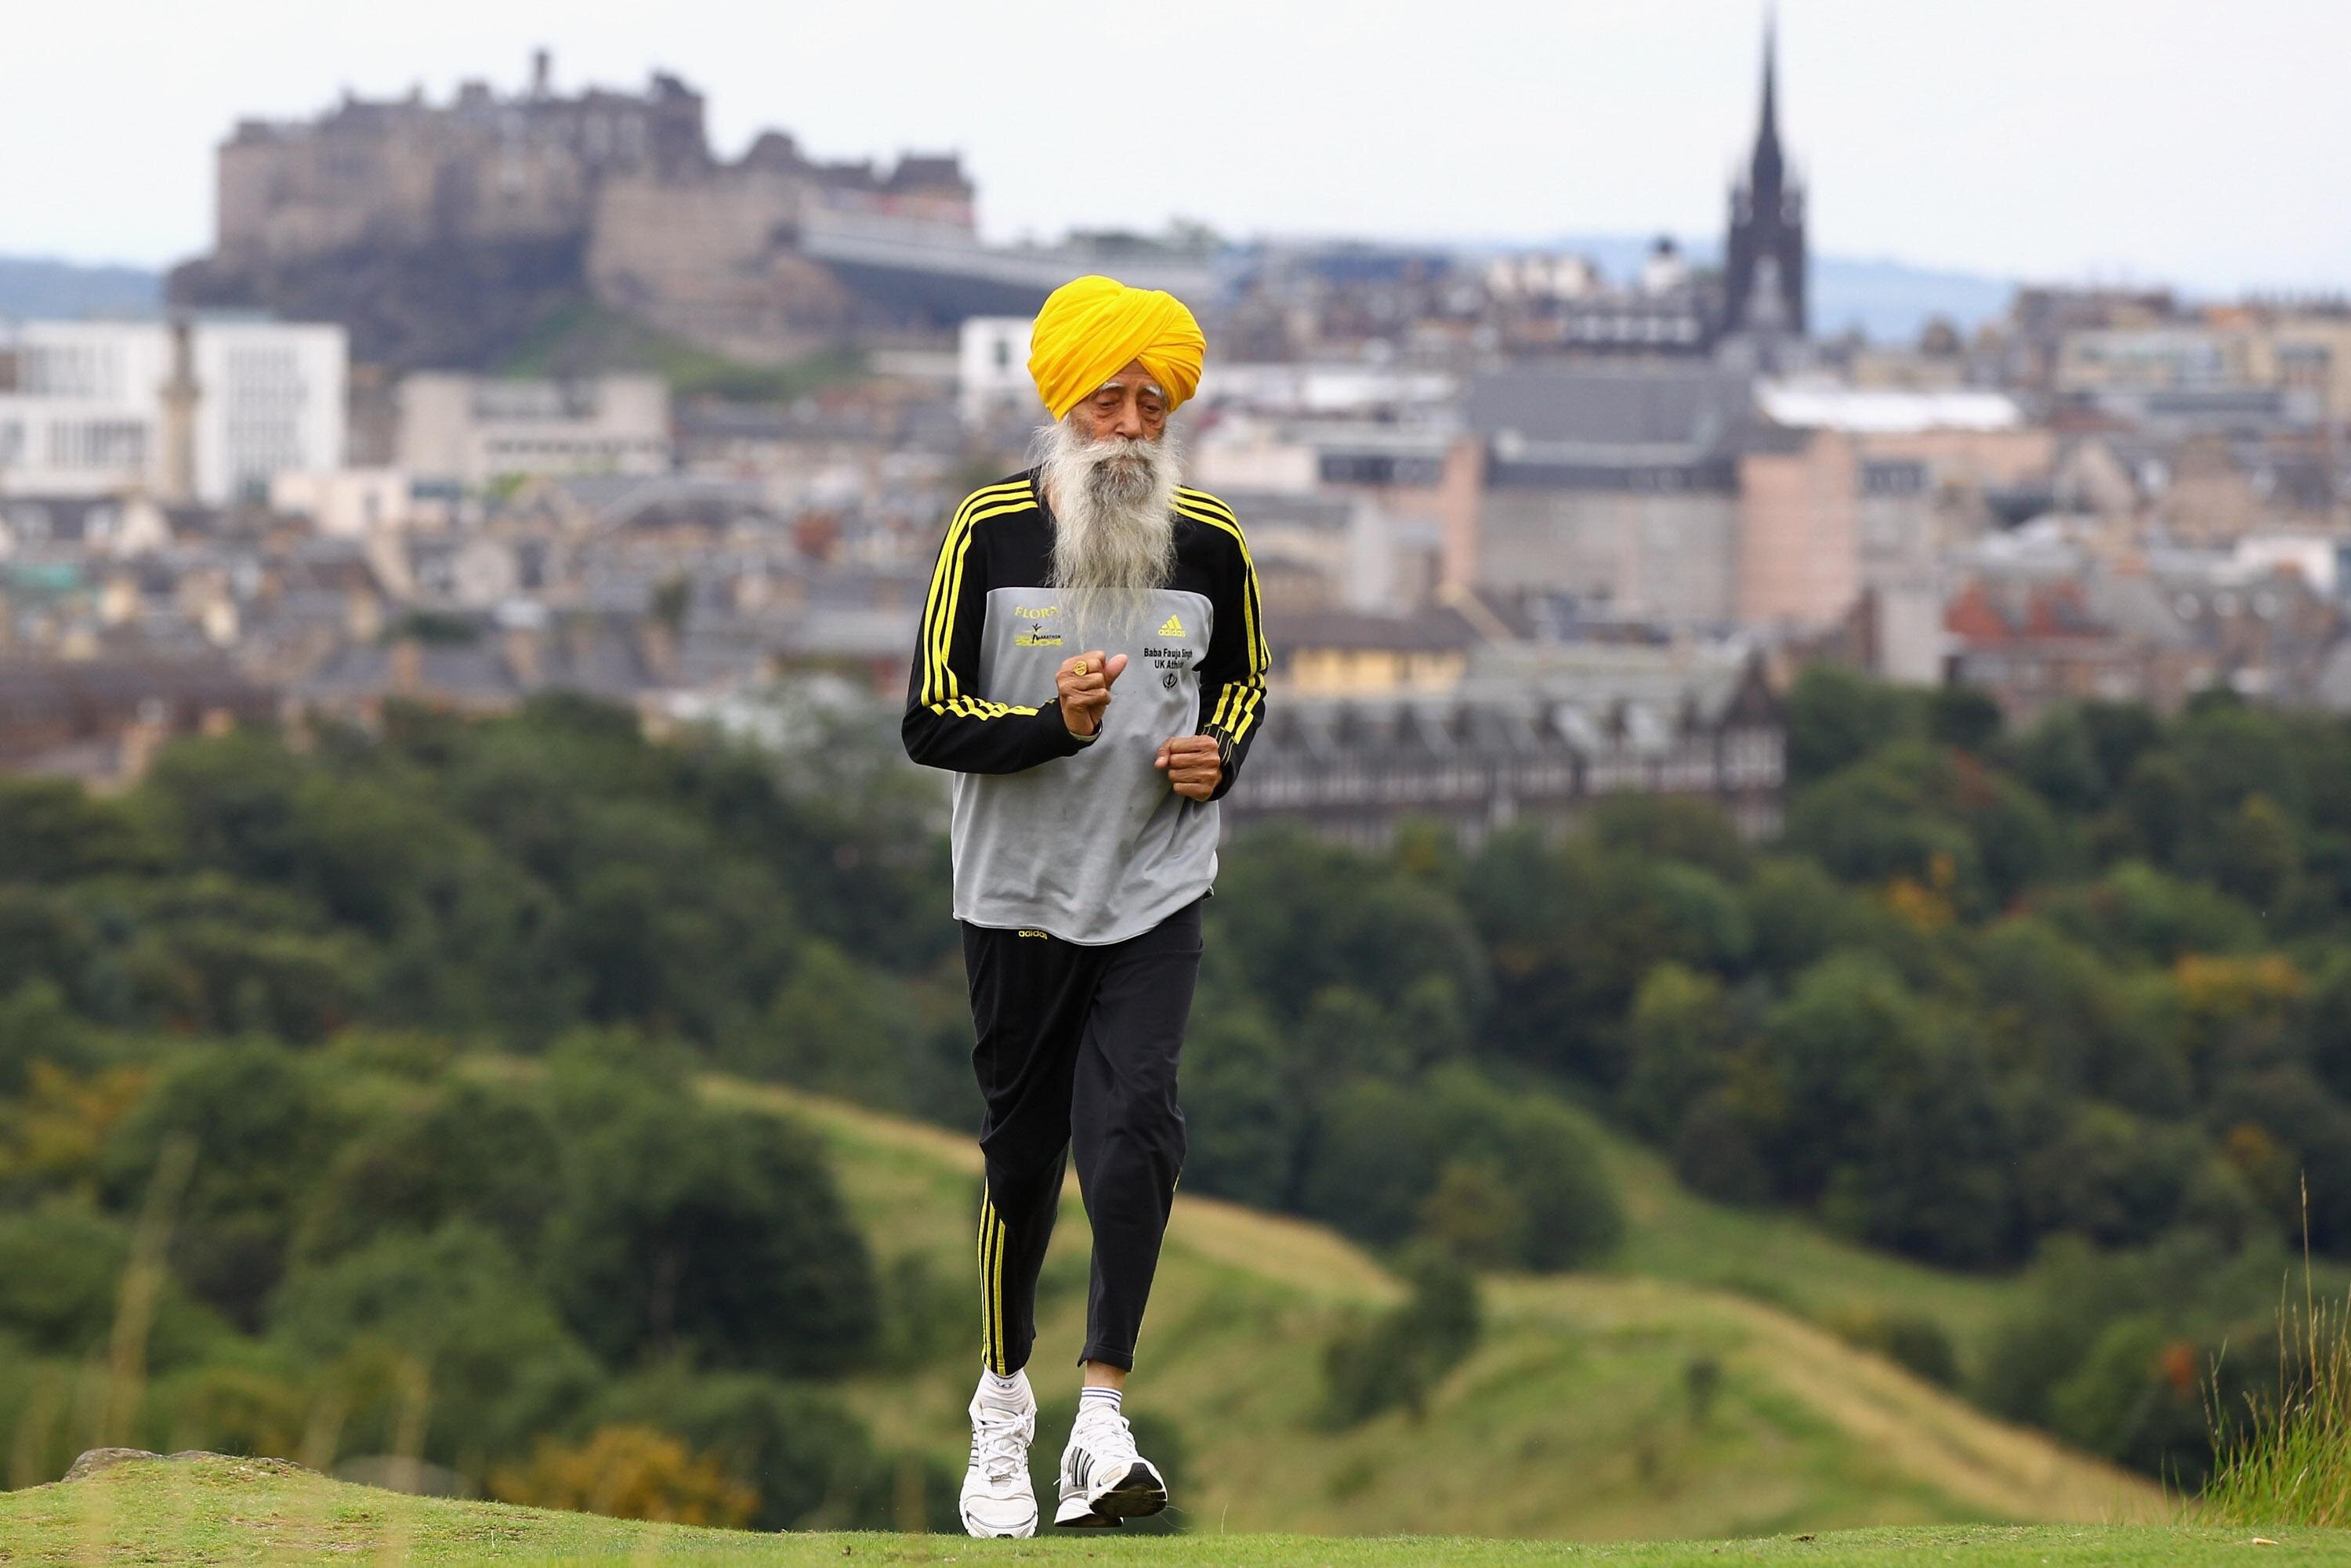 101-Year-Old Marathon Runner Fauja Singh